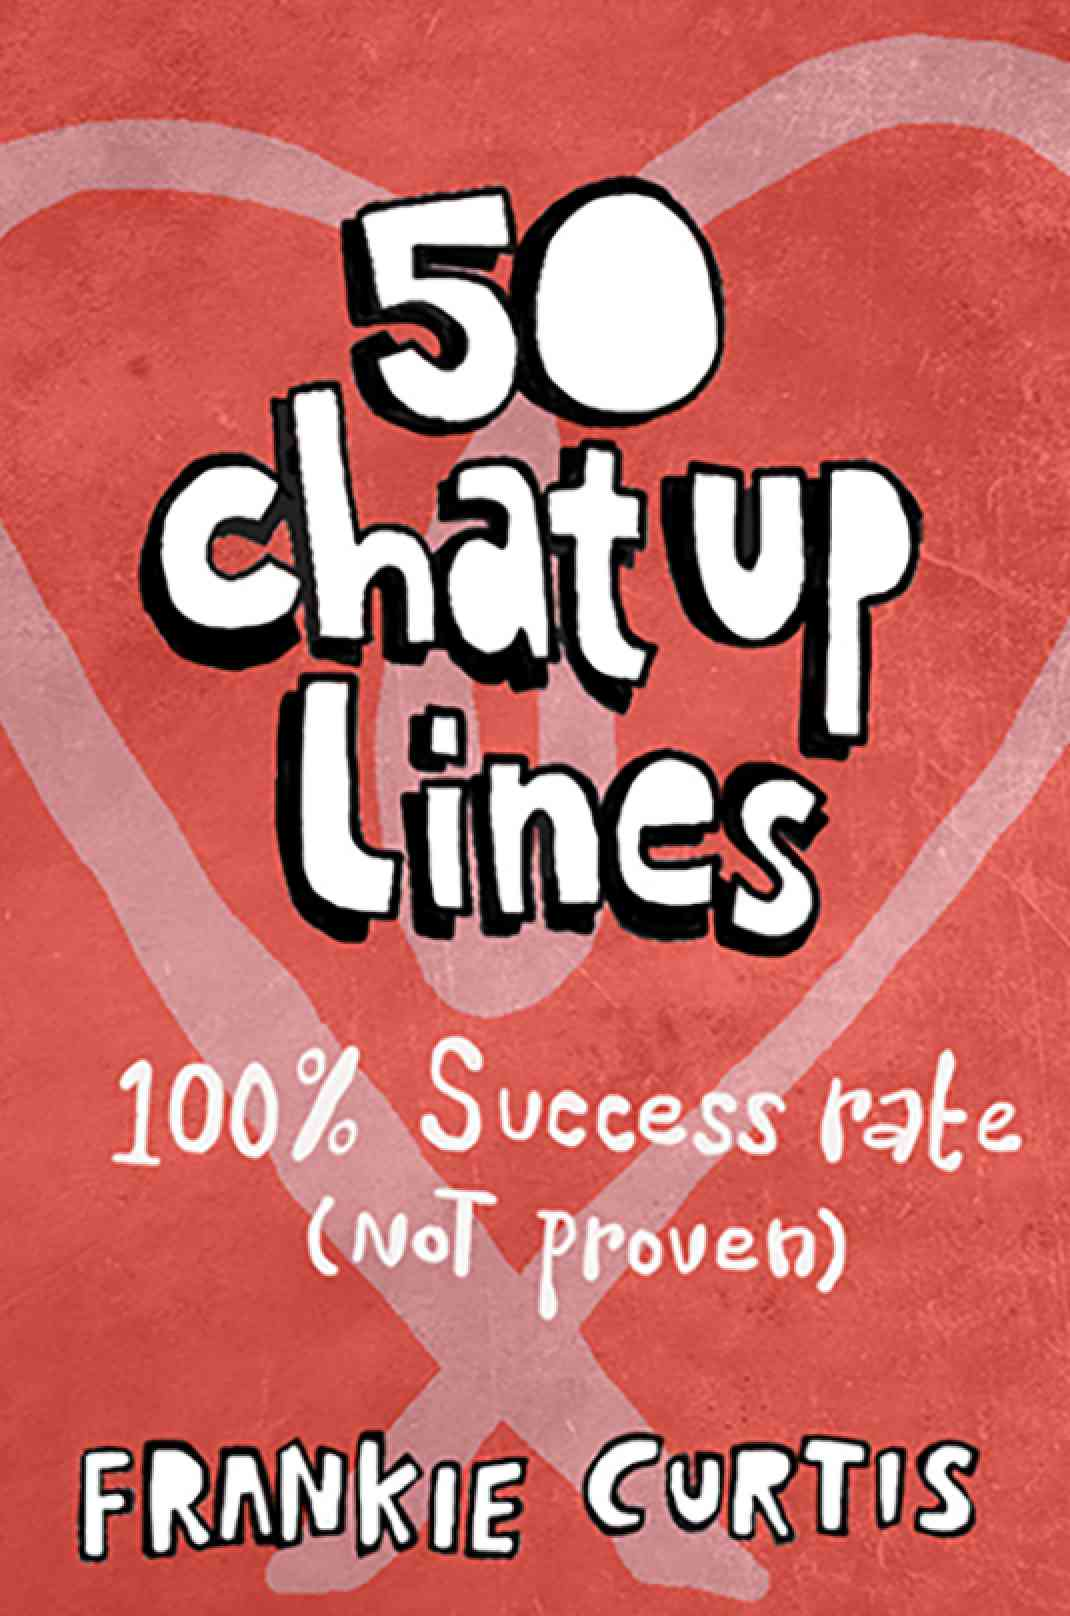 50 Chatup Lines